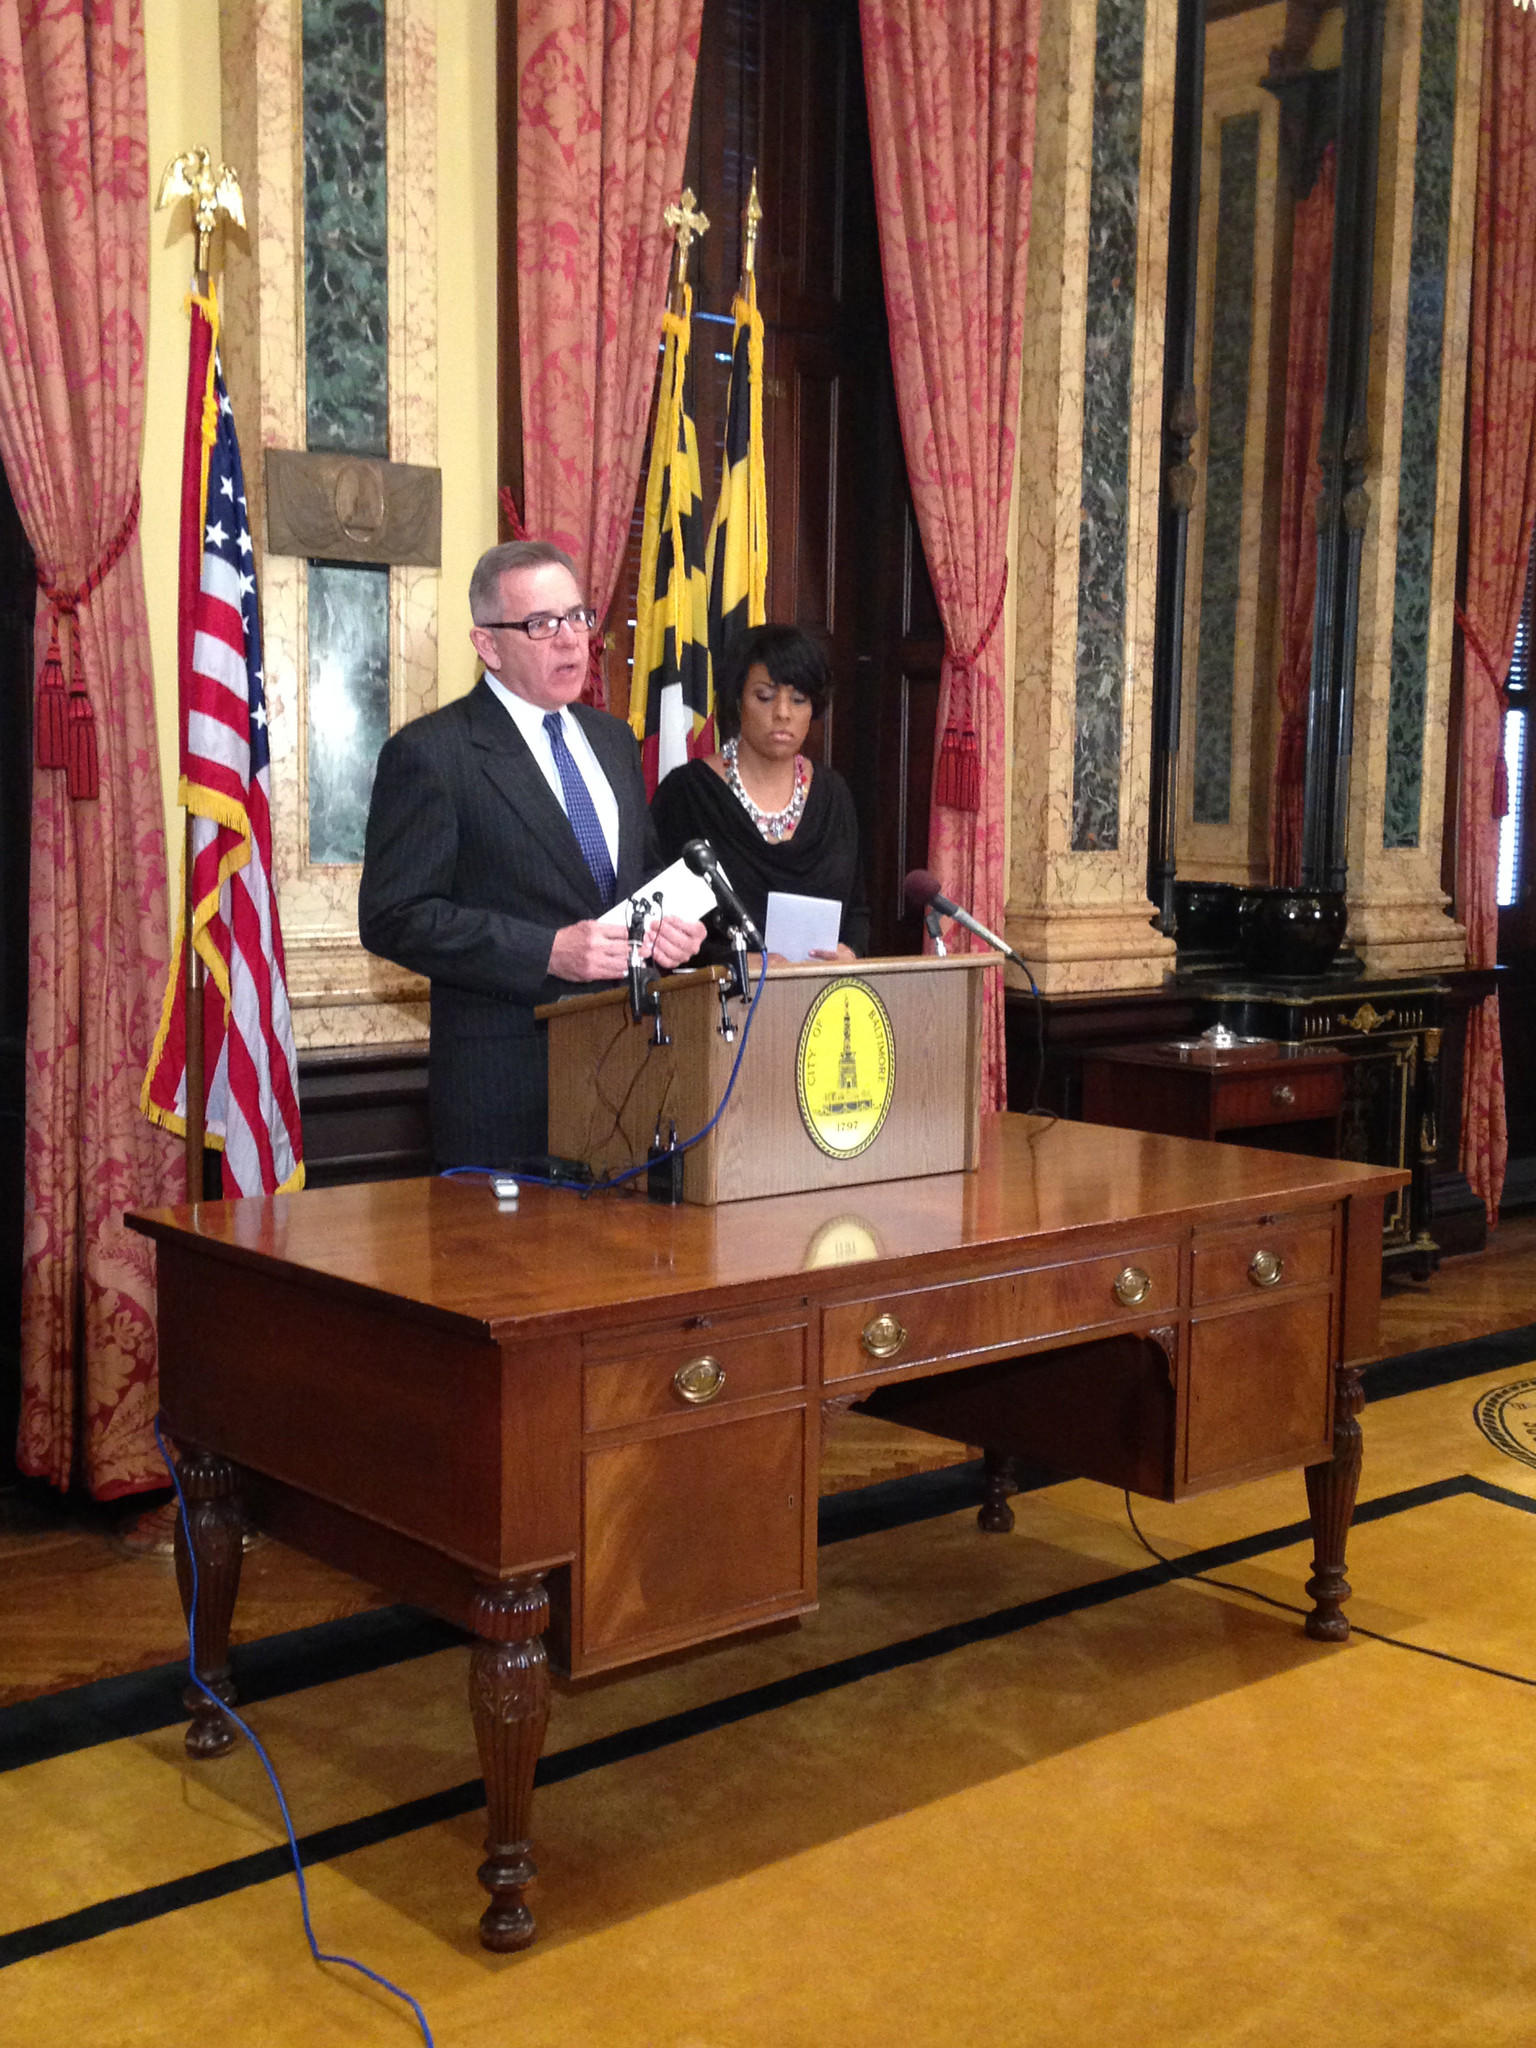 Baltimore Inspector General Robert H. Pearre Jr. and Mayor Stephanie Rawlings-Blake speak at a press conference about suspected subcontracting fraud in the mayor's information technology department.